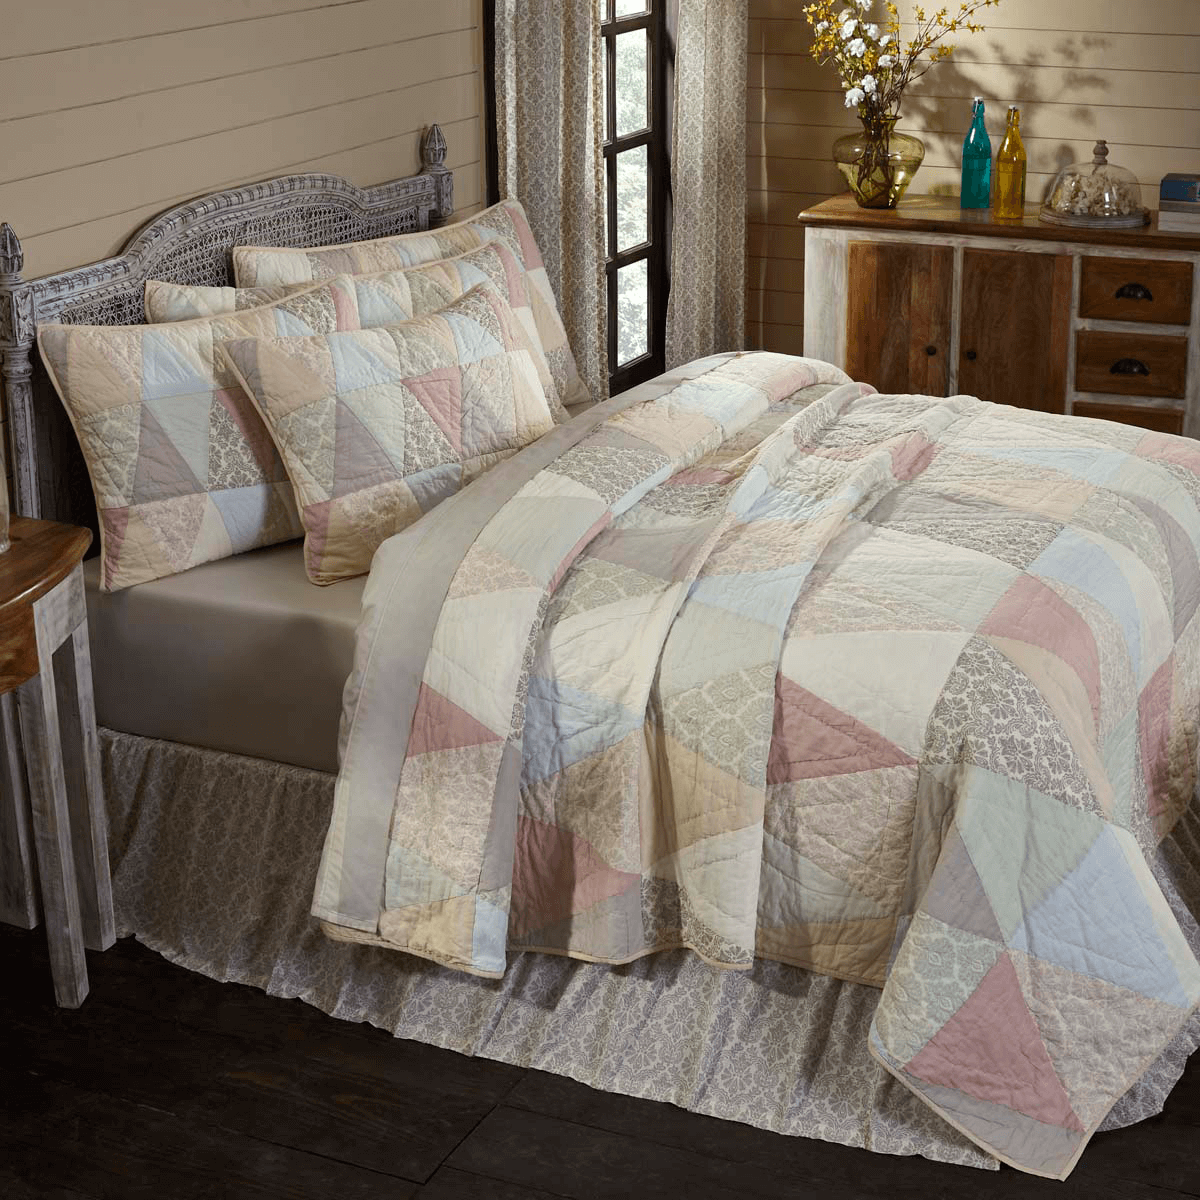 ip quilt shangri set by walmart fashions home com greenland la beea